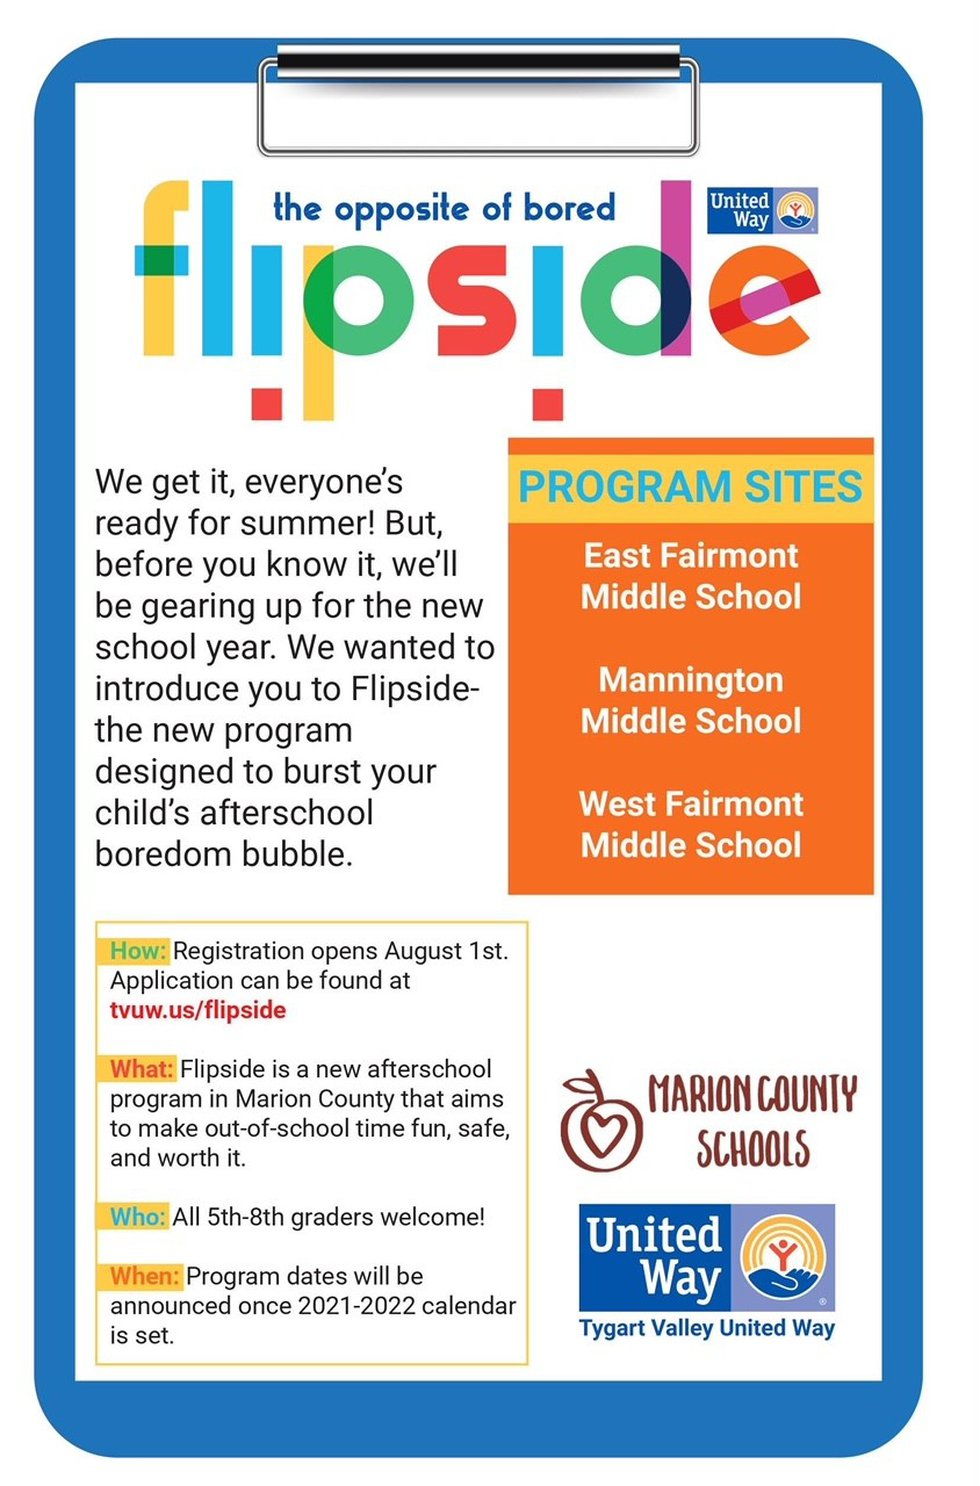 The Tygart Valley United Way is creating an afterschool program for middle school students...